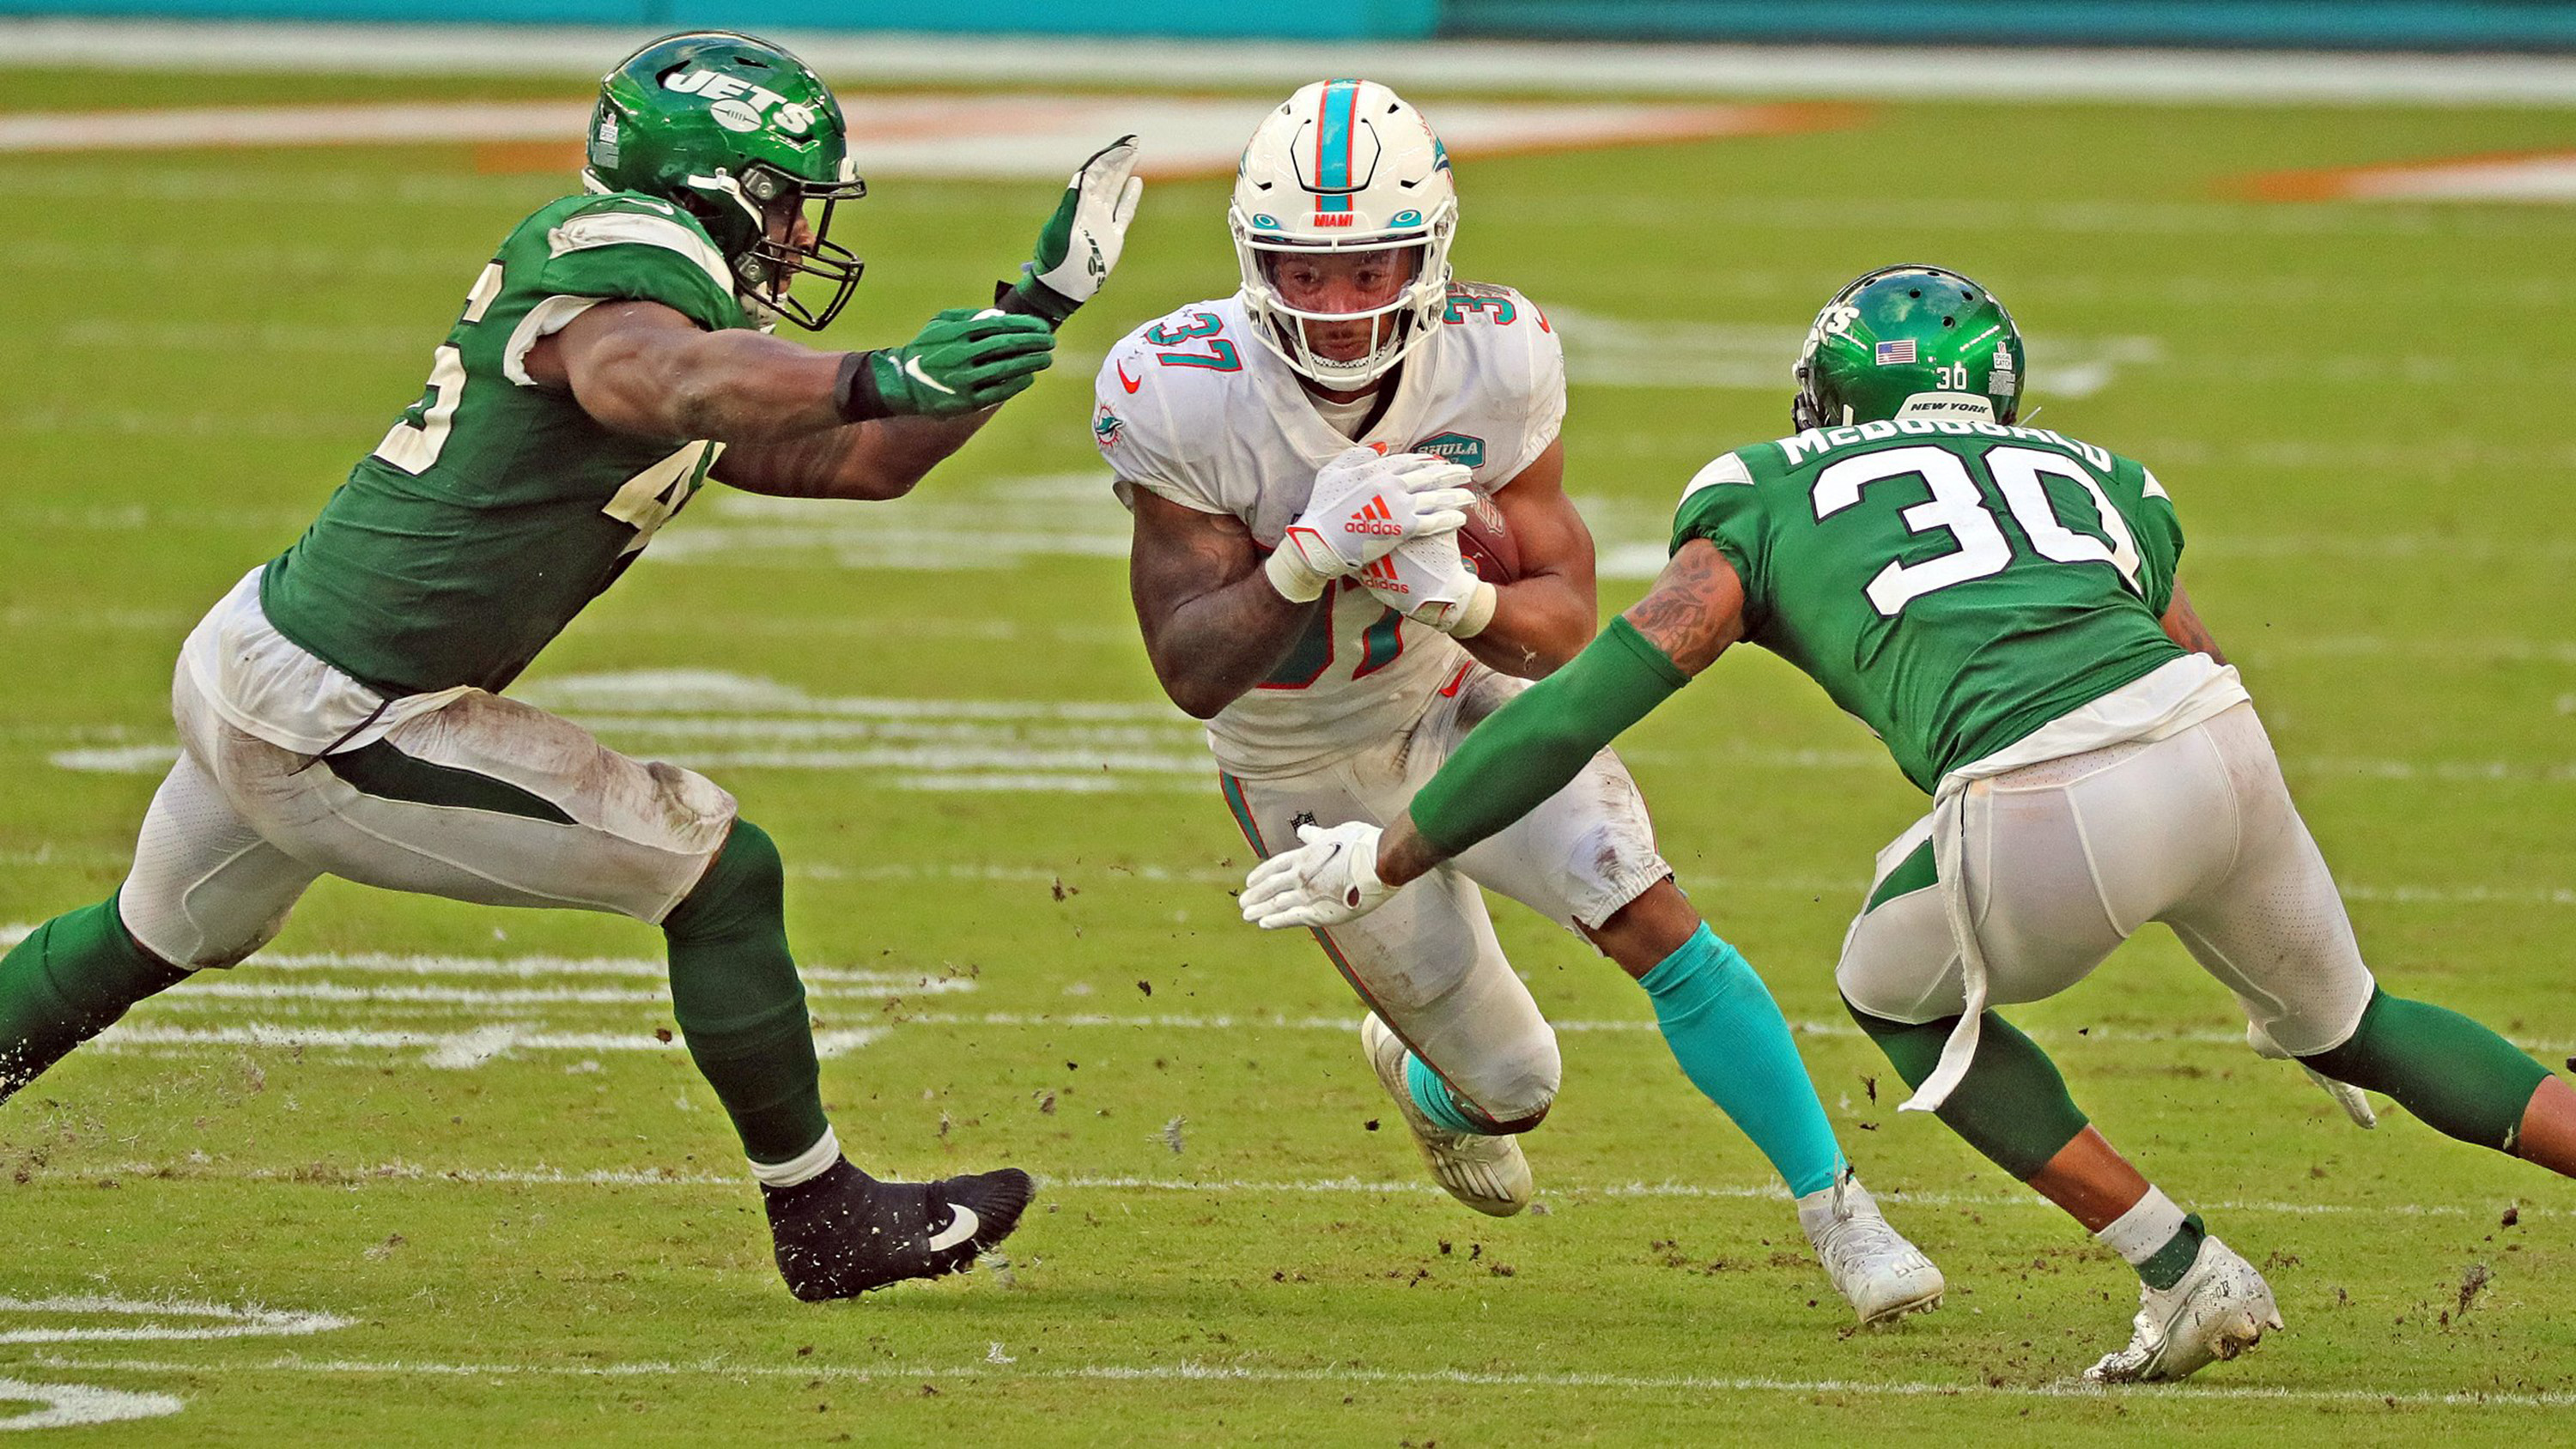 New Low for Gase's Jets — They're Shut Out by Miami, 24-0